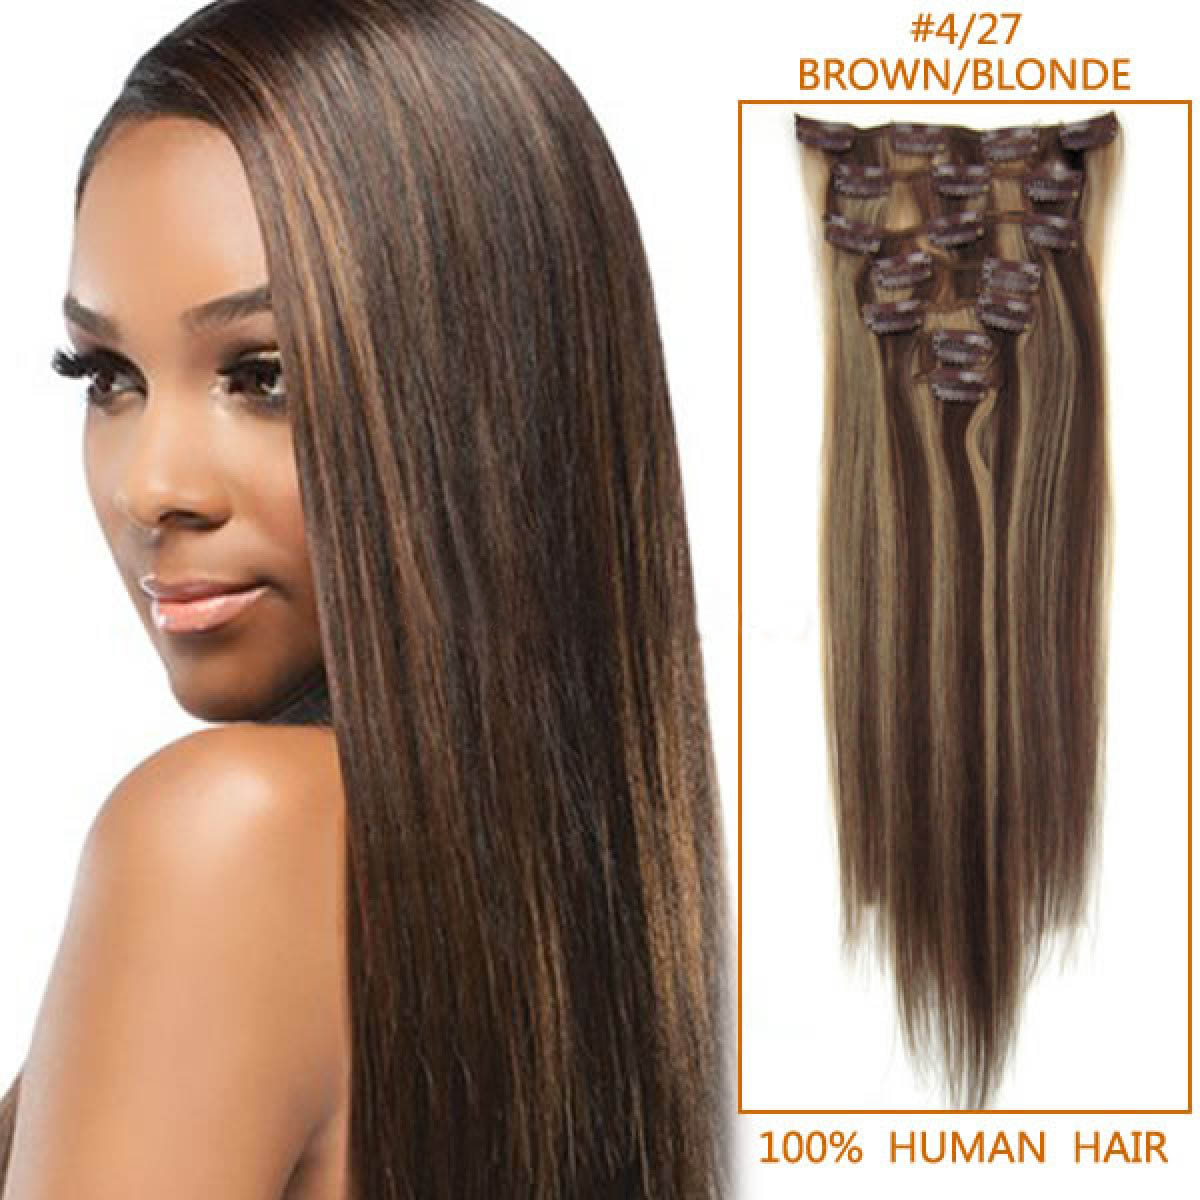 How much are 18 inch hair extensions at sally trendy hairstyles how much are 18 inch hair extensions at sally pmusecretfo Choice Image